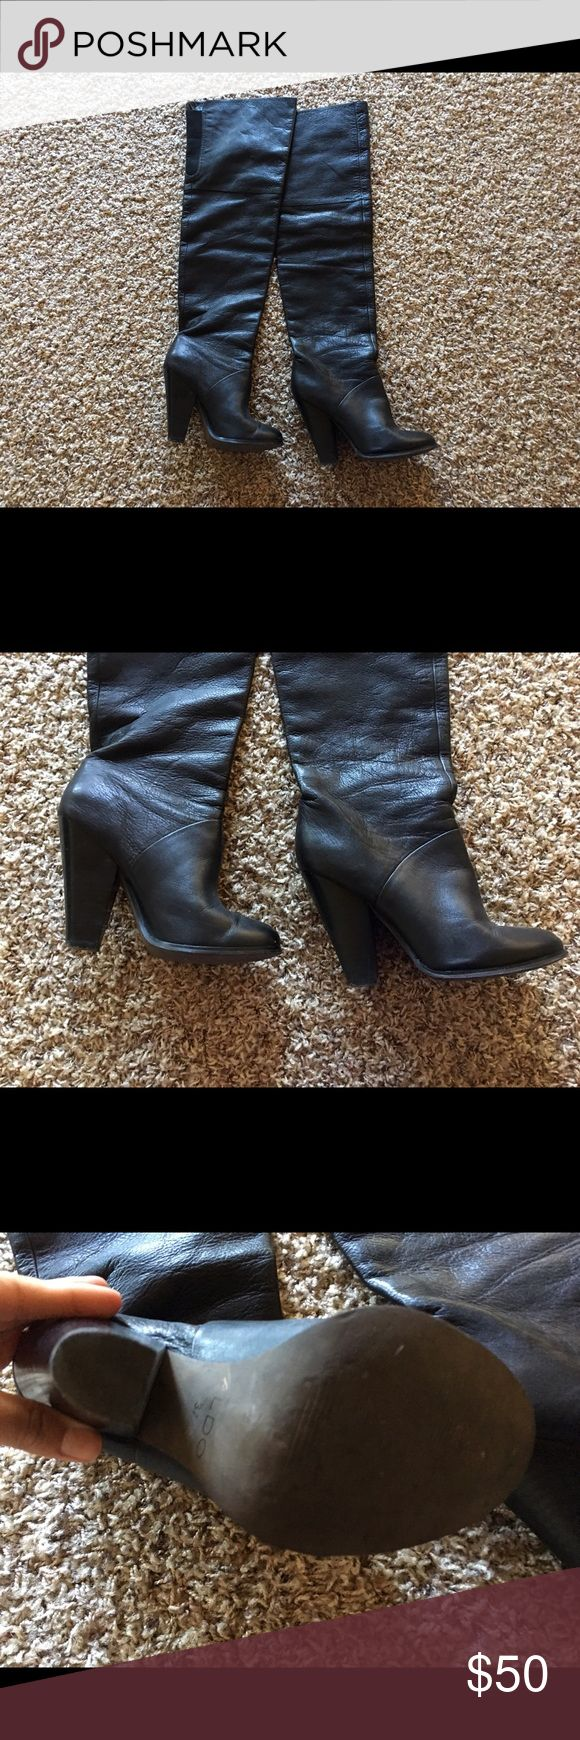 Aldo thigh high boots Aldo size 7 1/2 black leather thigh high boots. They are in GREAT condition! Only worn 4 times. Unfortunately I don't have a need for them anymore :( I purchased them for $150 originally. You will love these boots! Aldo Shoes Over the Knee Boots